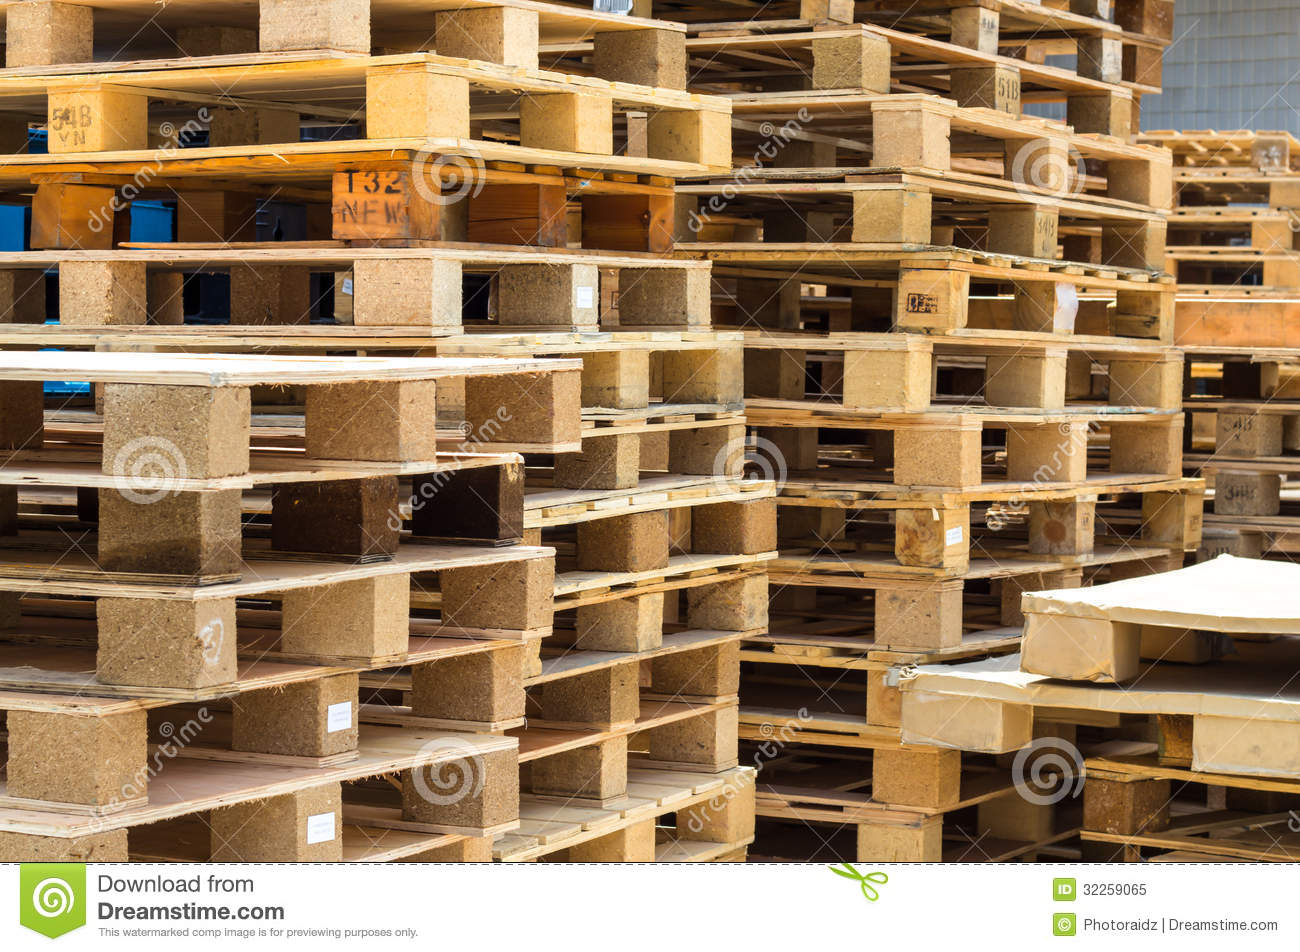 Stock wood pallet stock image. Image of depot, packaging ...